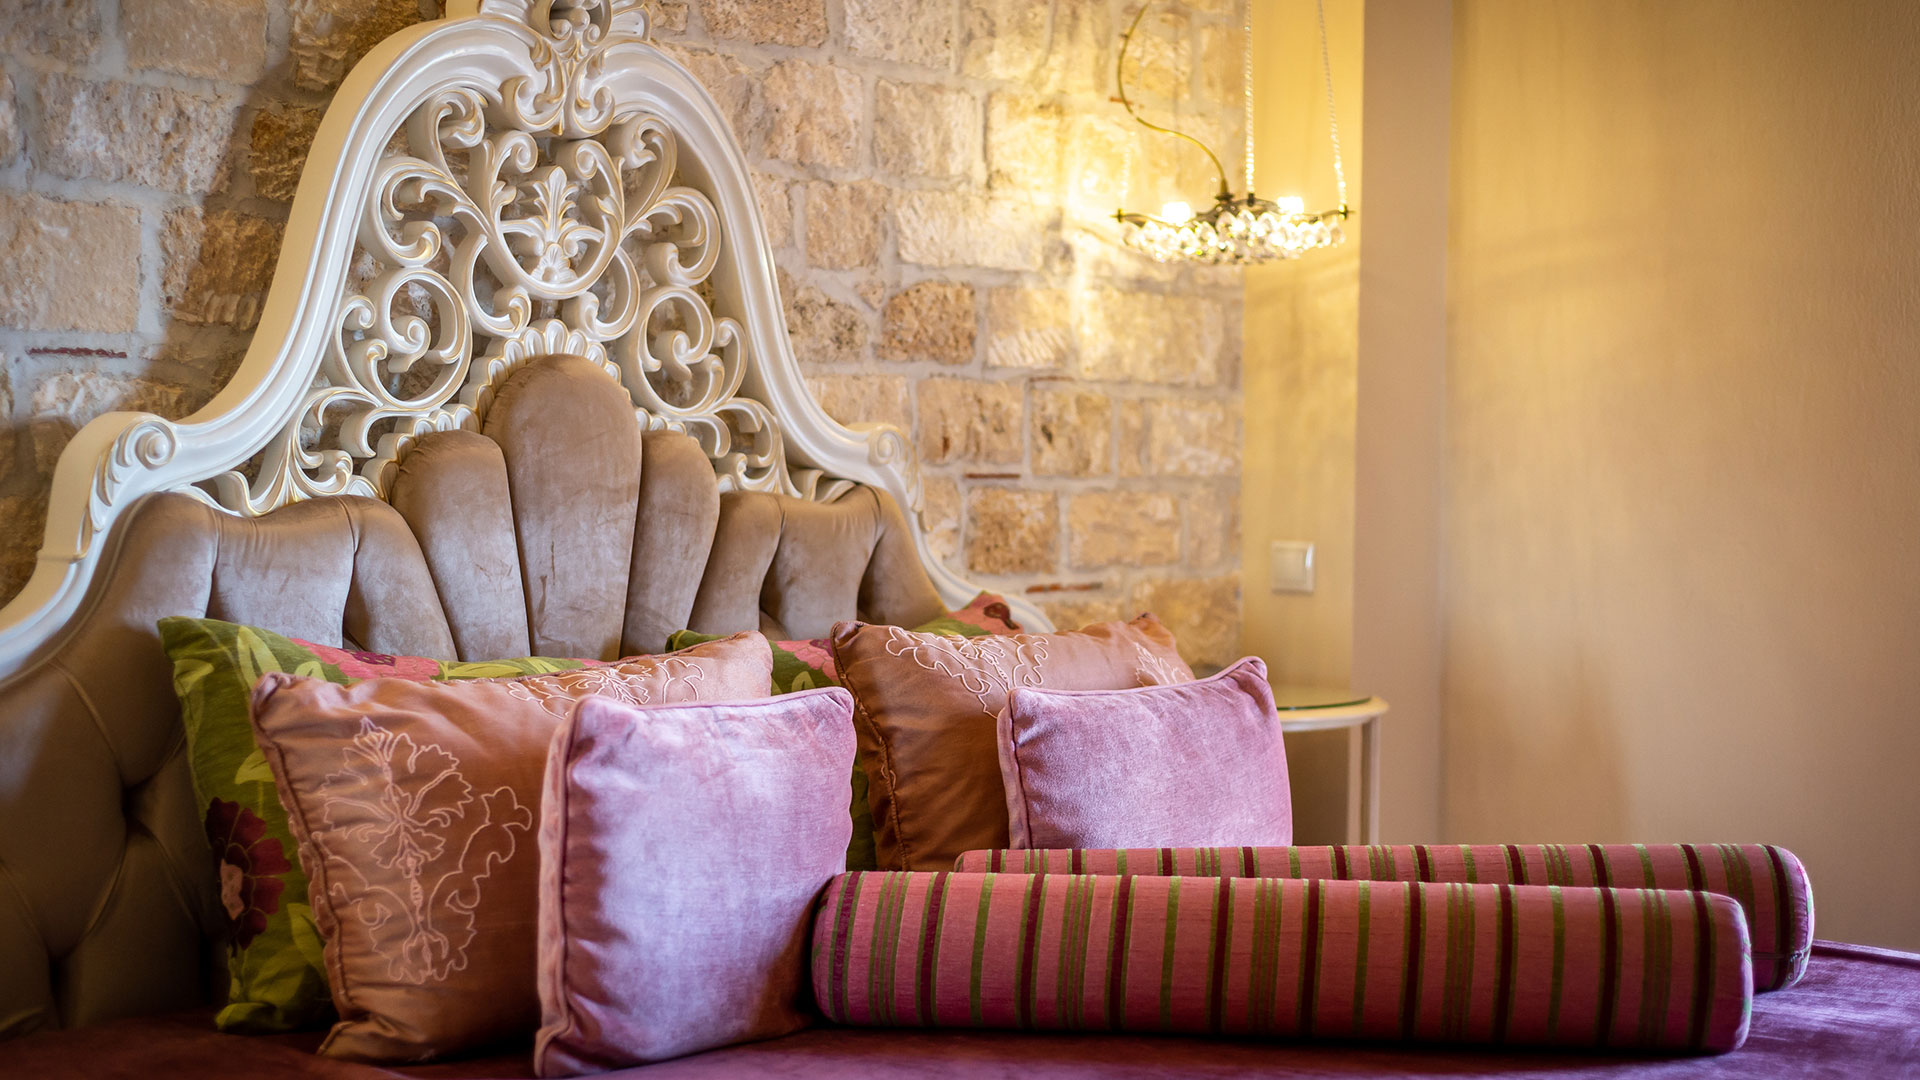 Achtis Hotel is a luxury family hotel in Afitos, Halkidiki.